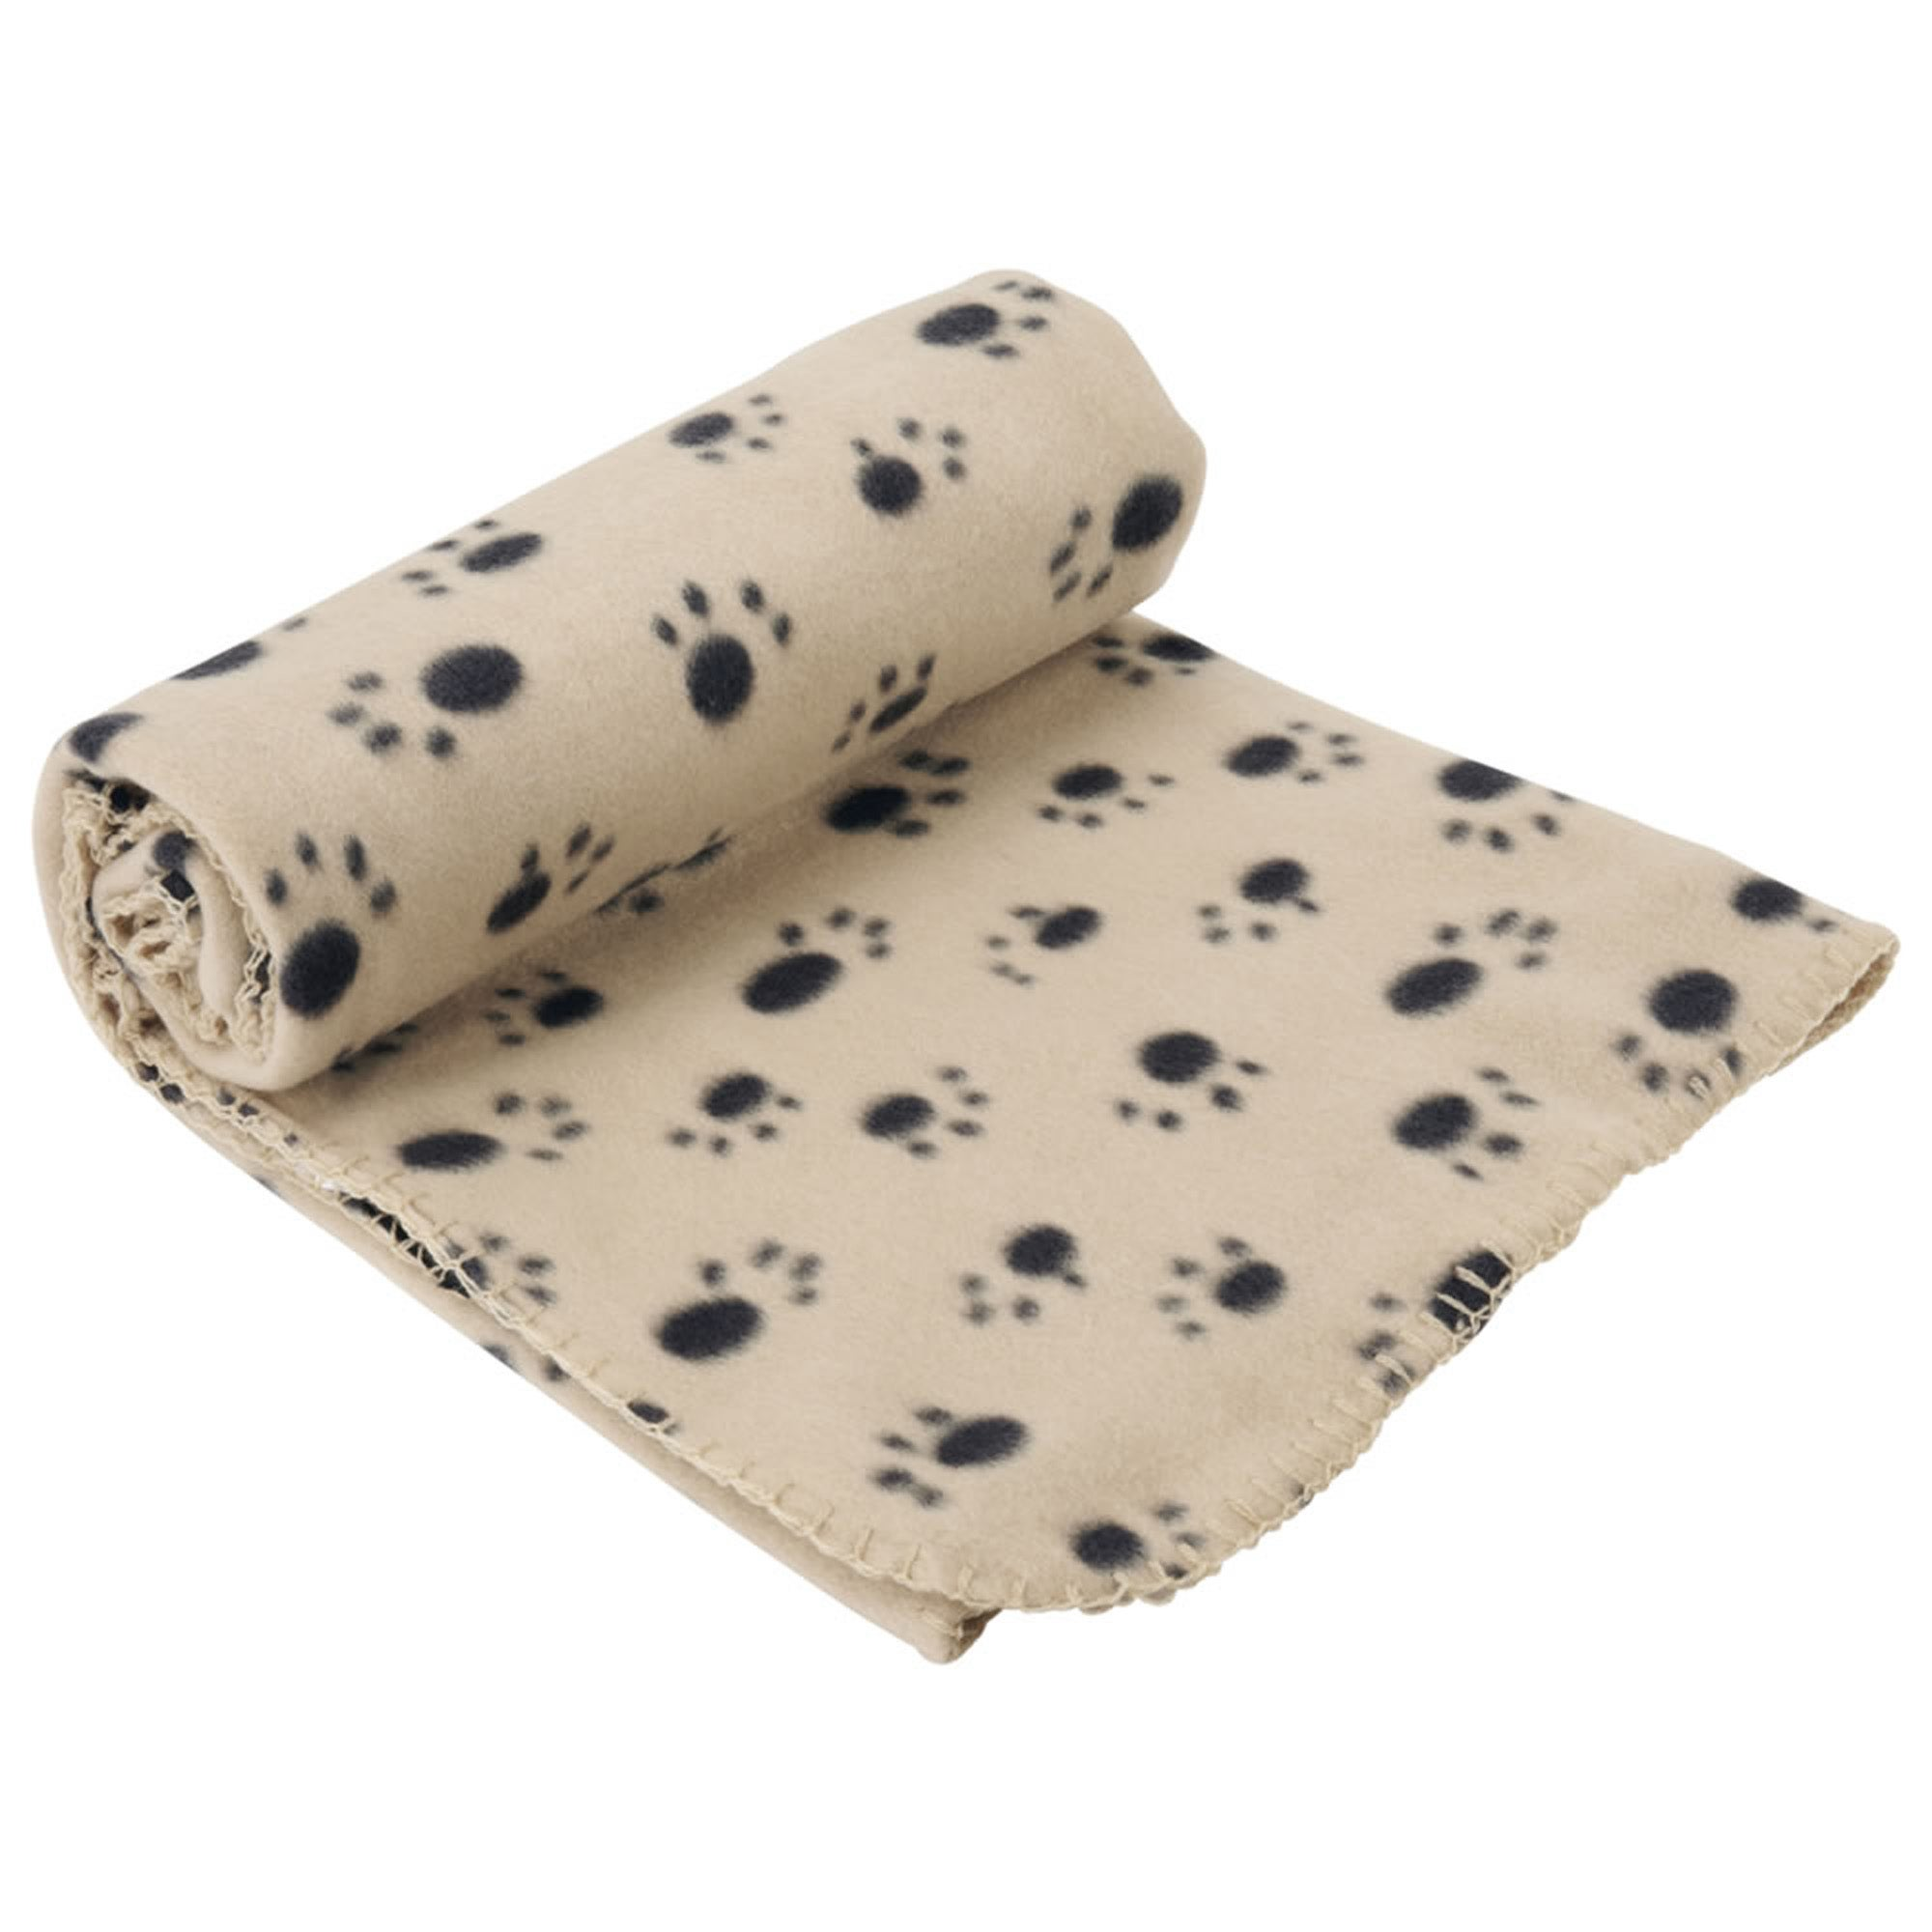 Extra Large Cream Dog Blanket Cream and Black